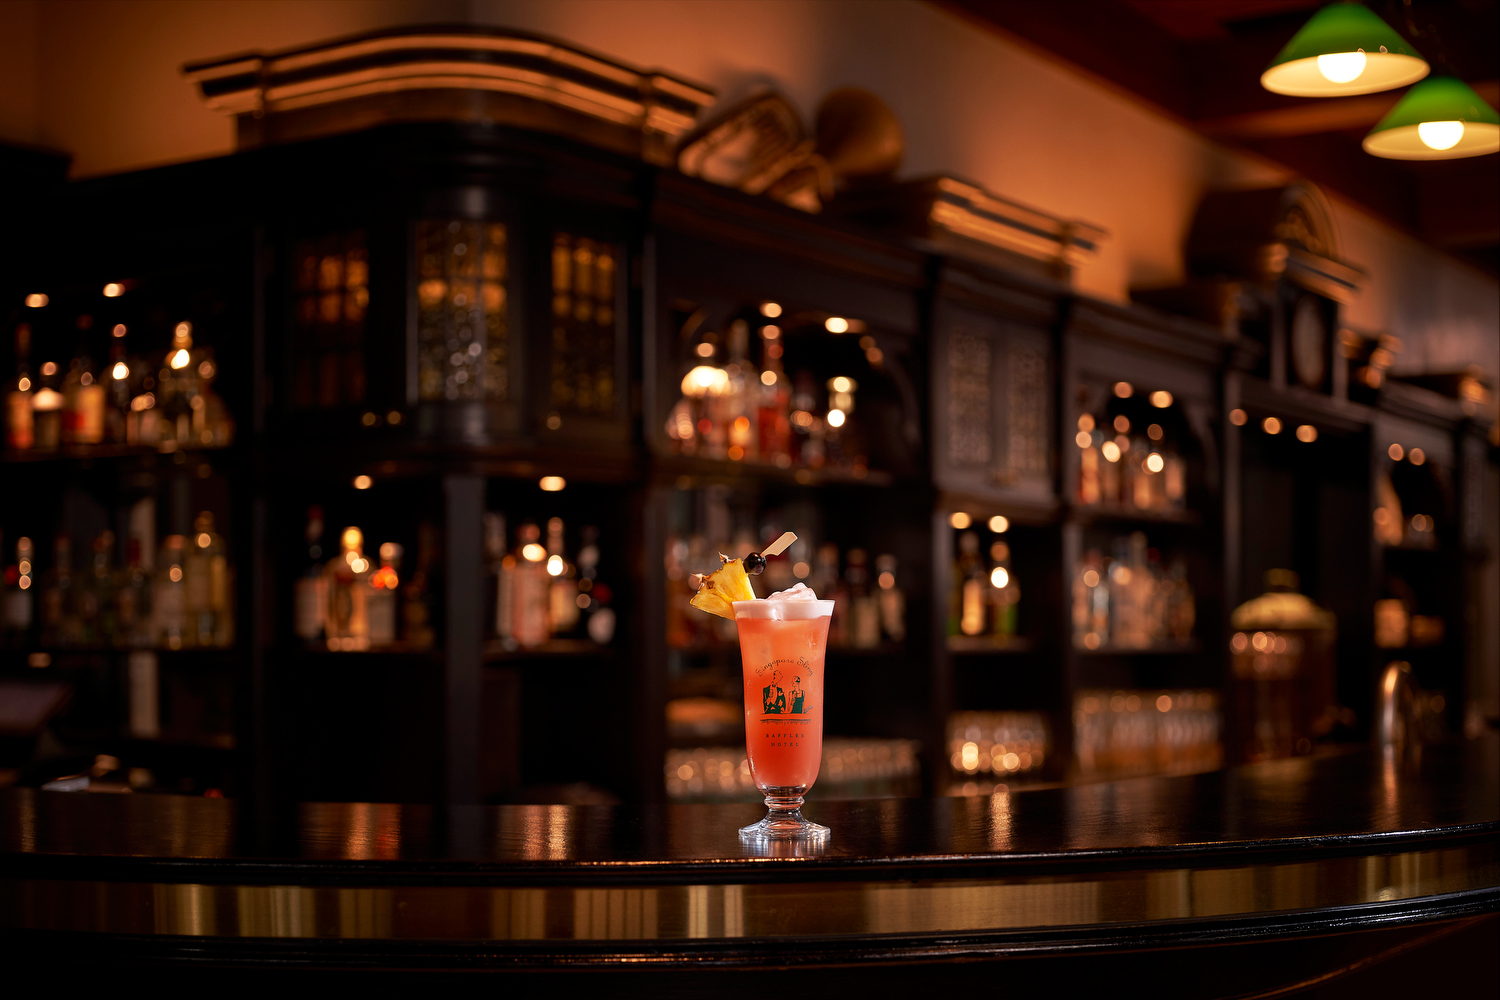 Originally created in 1915 by Ngiam Tong Boon, a Hainanese bartender at Raffles Hotel Singapore, the Singapore Sling cleverly disguised a cocktail as fruit juice.